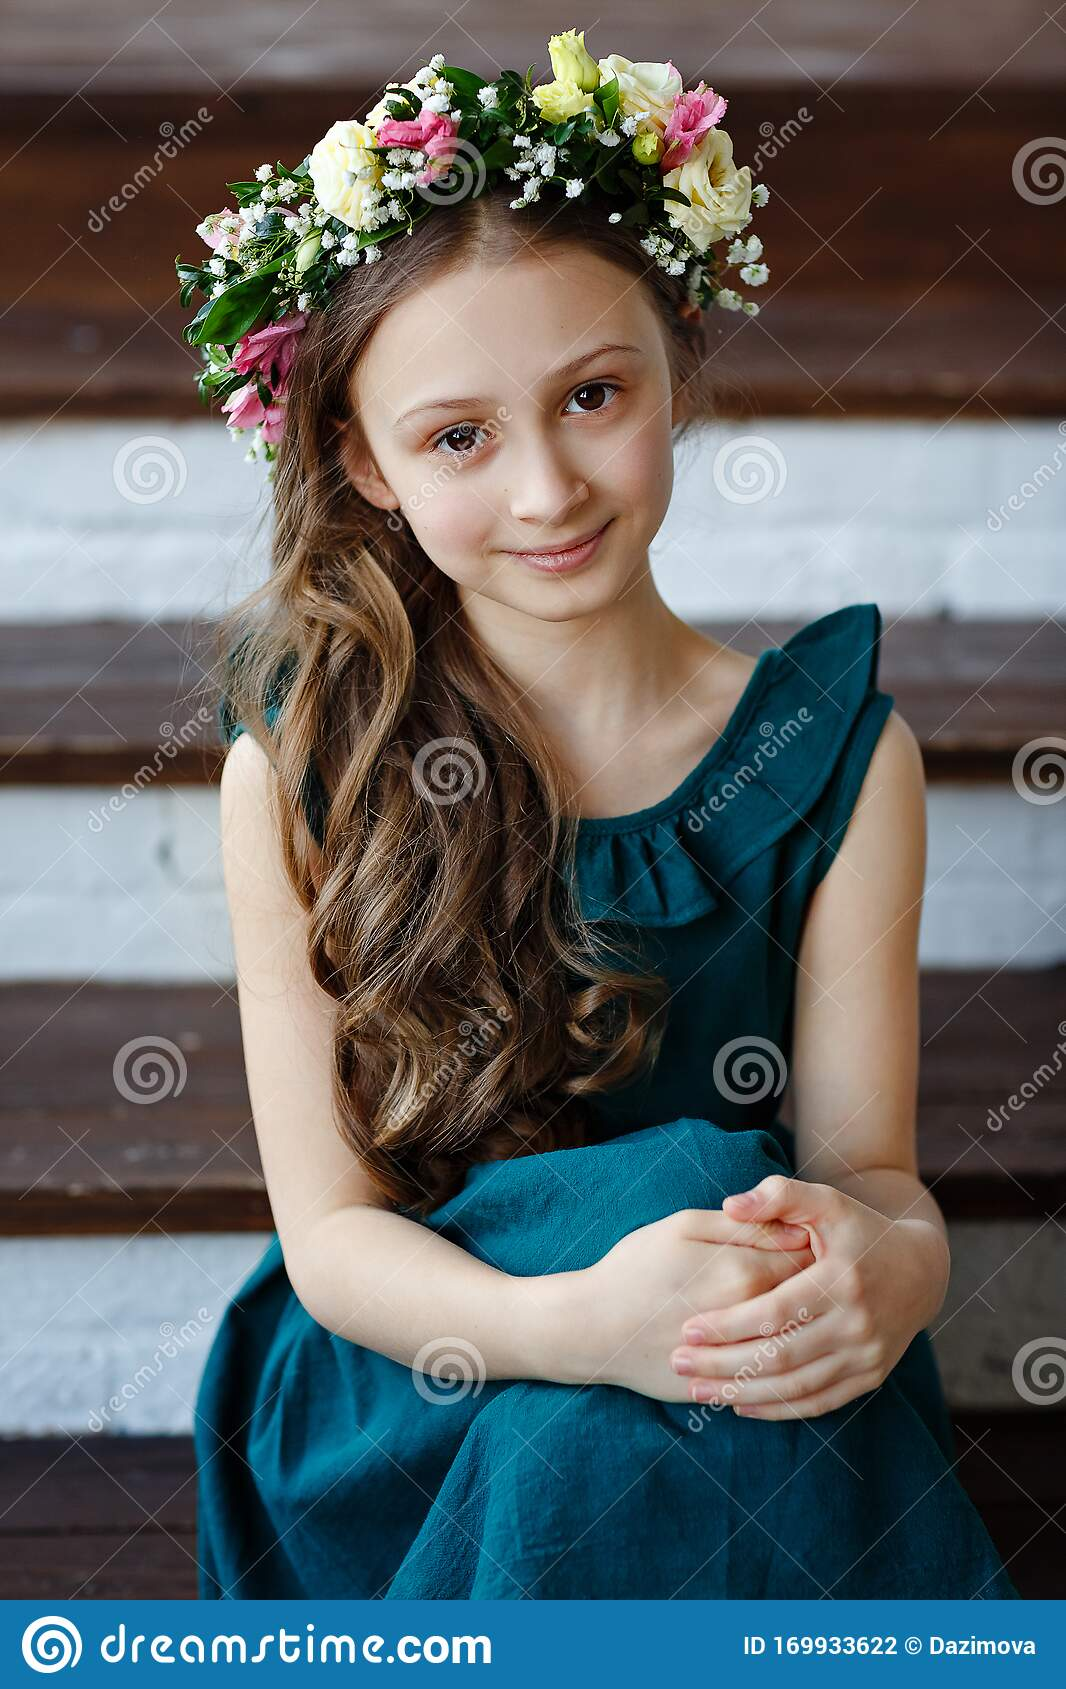 Beautiful Cute Baby Girl With Long Hair In A Green Dress Sits In A Wreath  Of Fresh Flowers On Her Head And Looks At The Camera Stock Photo - Image of  baby,